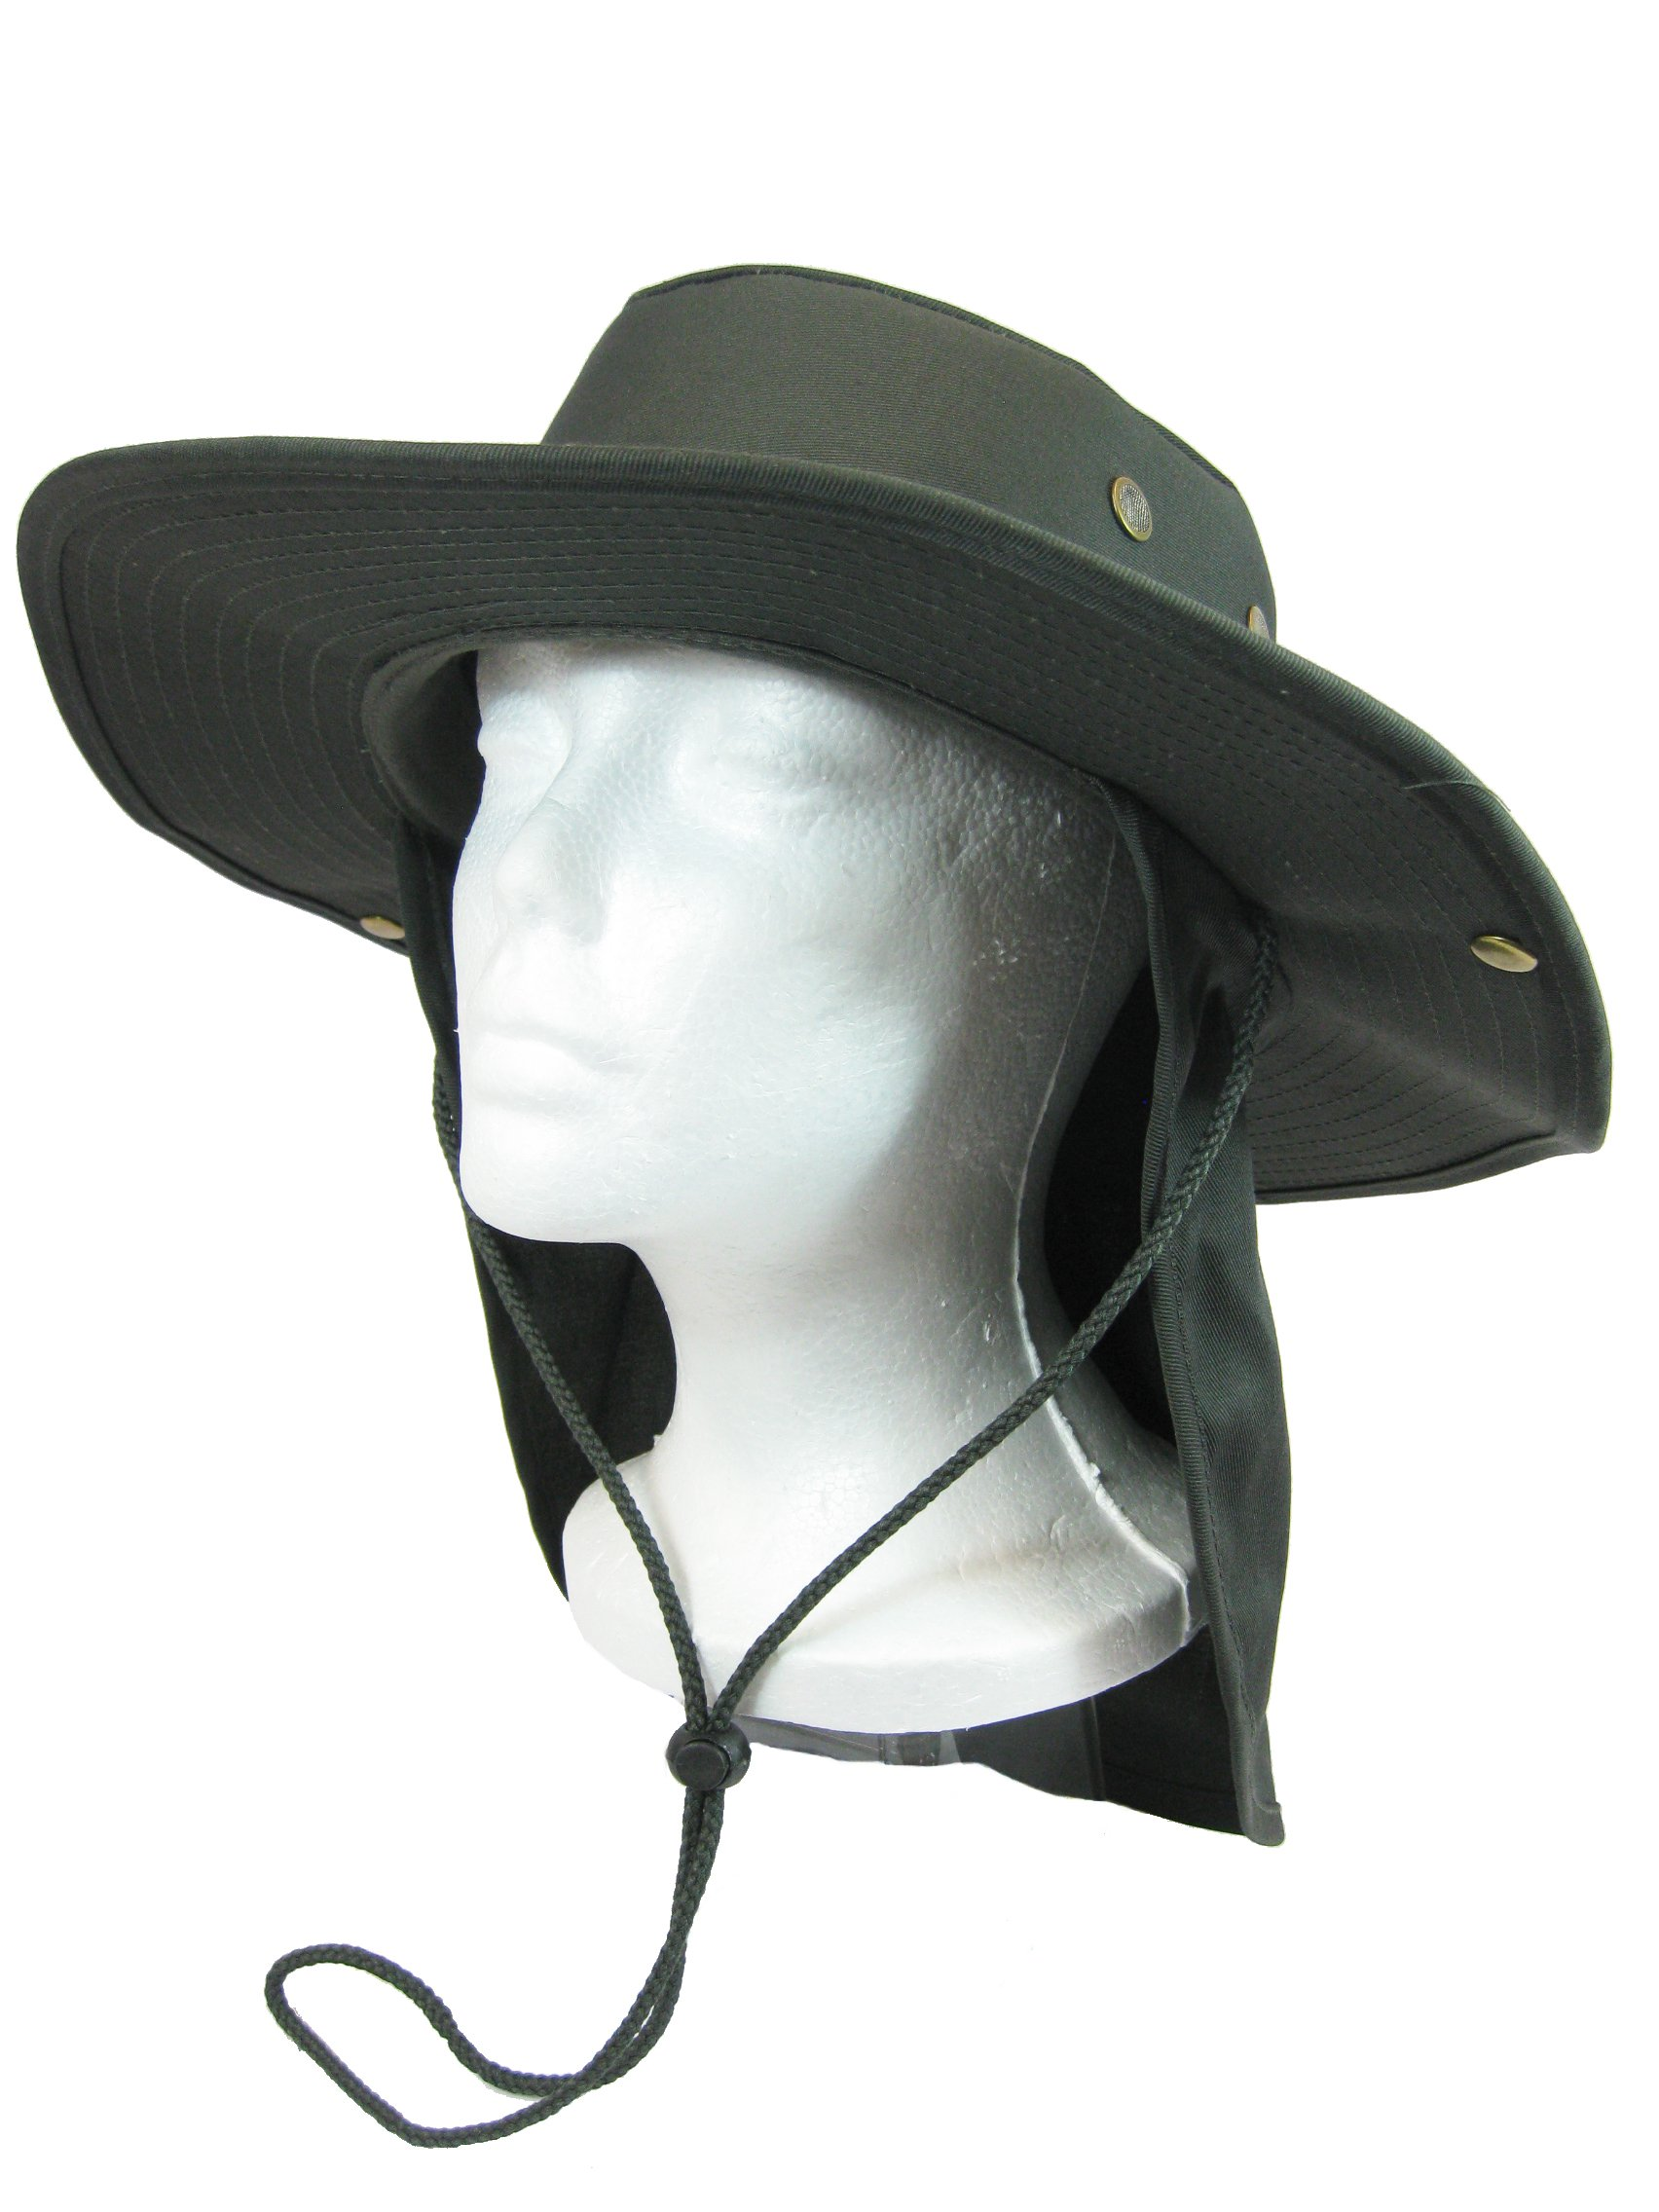 Fishing Hiking Hunting Boating Snap Brim Hat Sun Cap with Neck Flap Cover Outdoor Safari Boonie Bush (Olive Drab, S) by SW